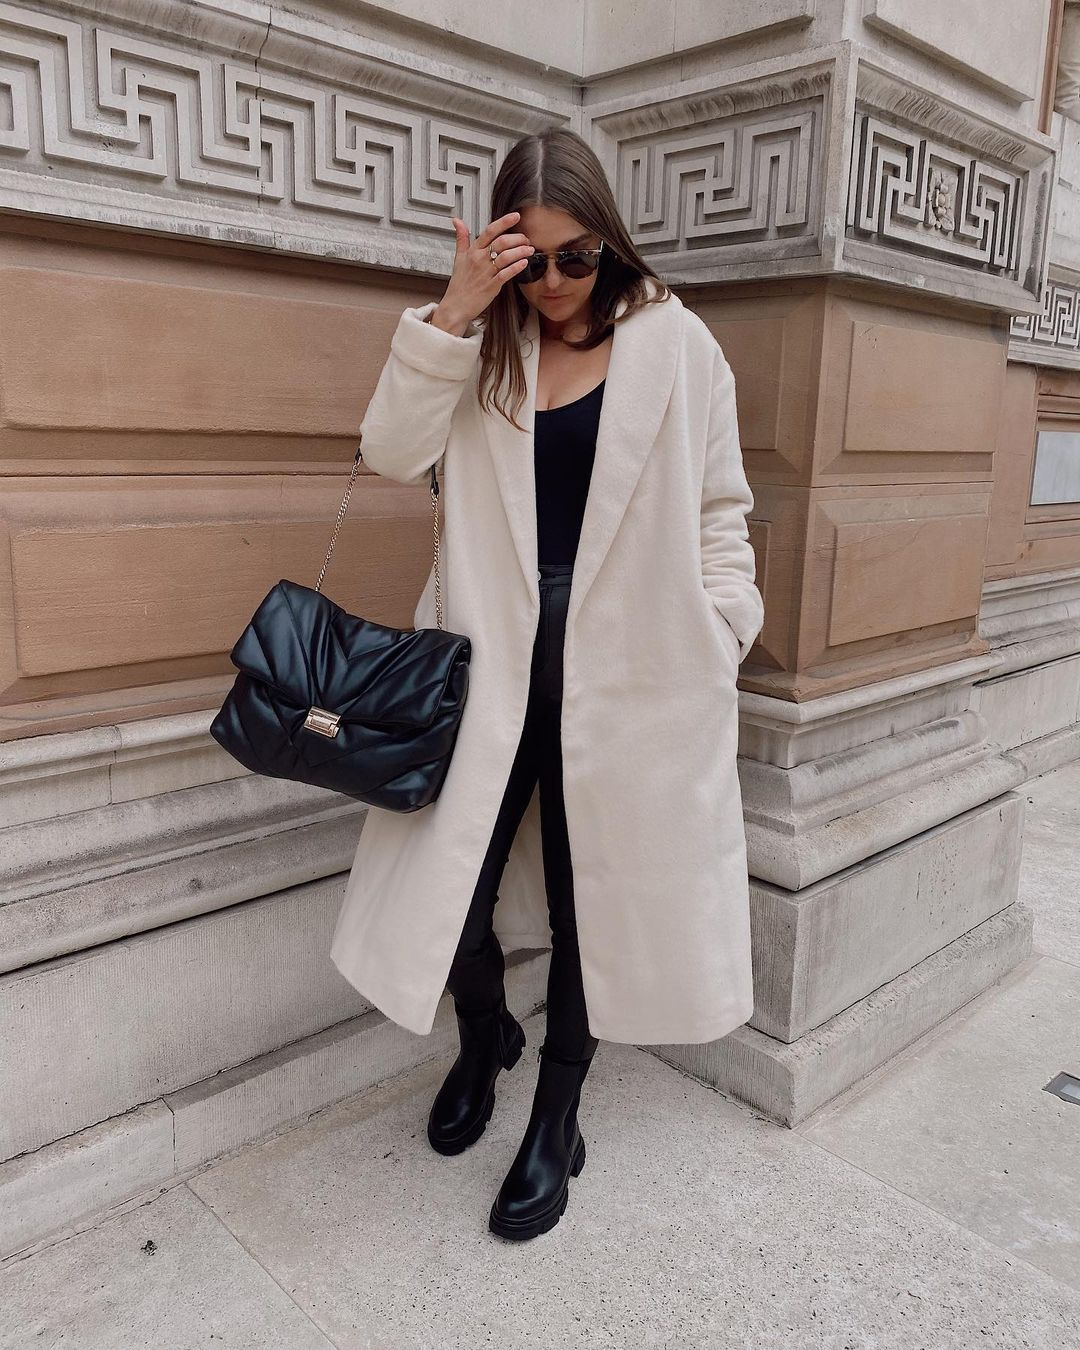 Isabella Neutral Style Inspo On Instagram Chunky Boots Leather Trousers A Long Coat My Fa Winter Outfit Accessories Cute Winter Outfits Fashion Inspo